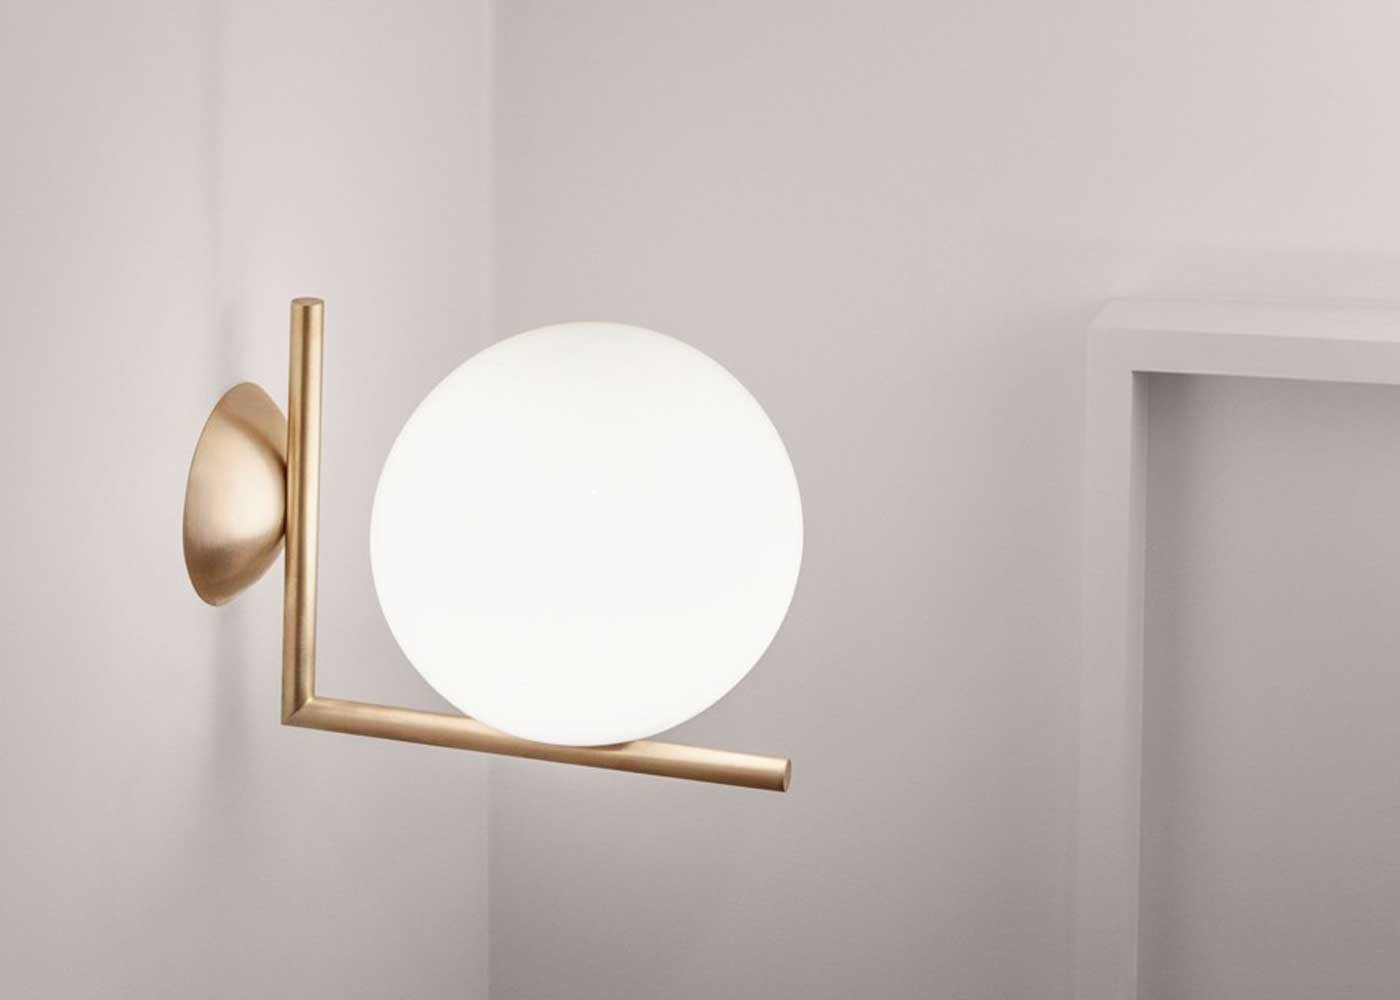 Flos ic ceiling wall lamp buy online campbell watson store